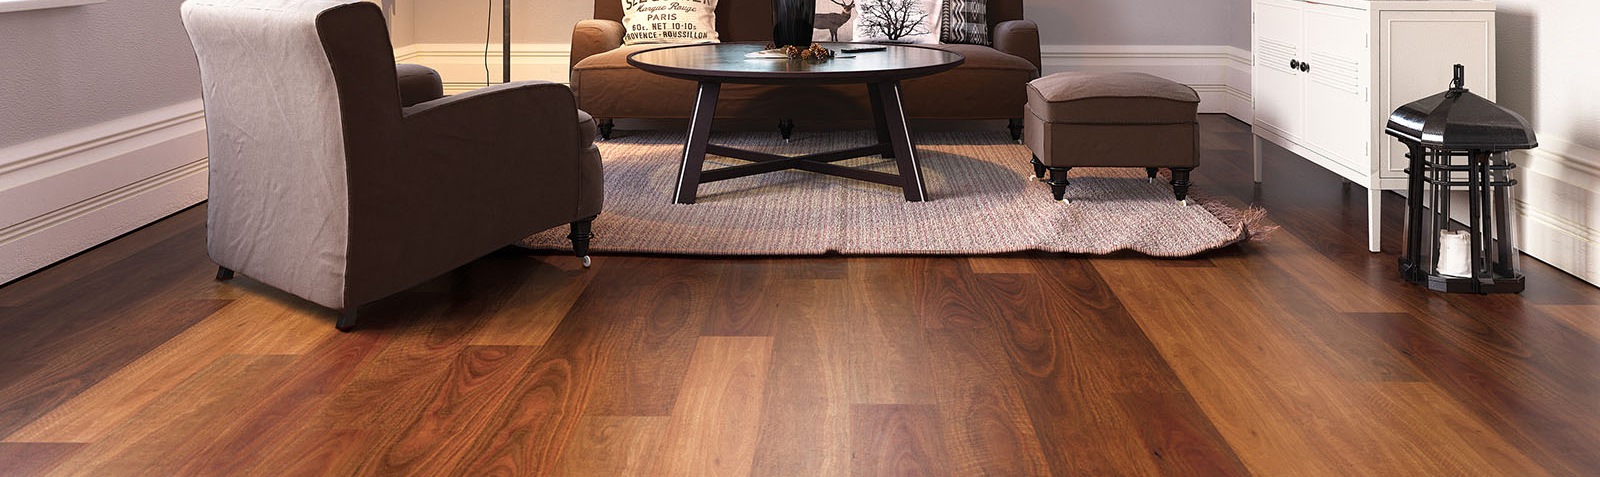 Rigid Plank Northern Spotted Gum Lounge Room